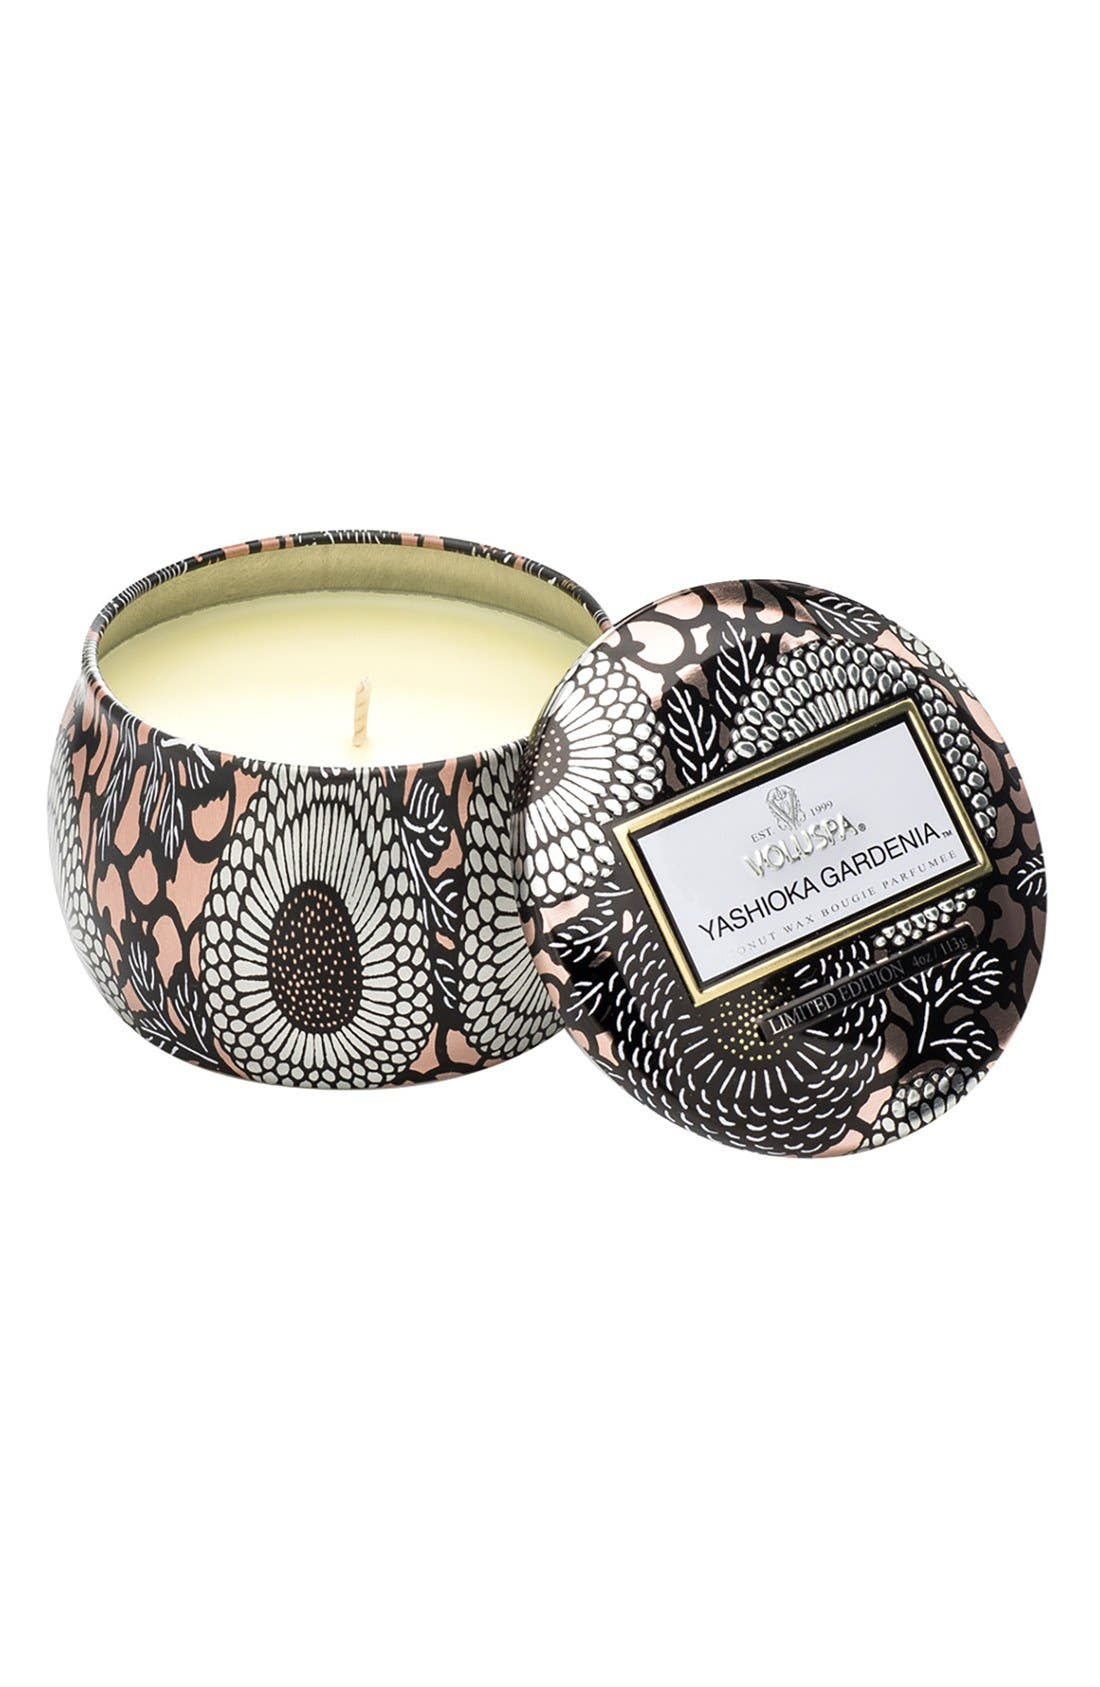 Alternate Image 1 Selected - Voluspa Japonica - Yashioka Gardenia Petite Decorative Tin Candle (Limited Edition)